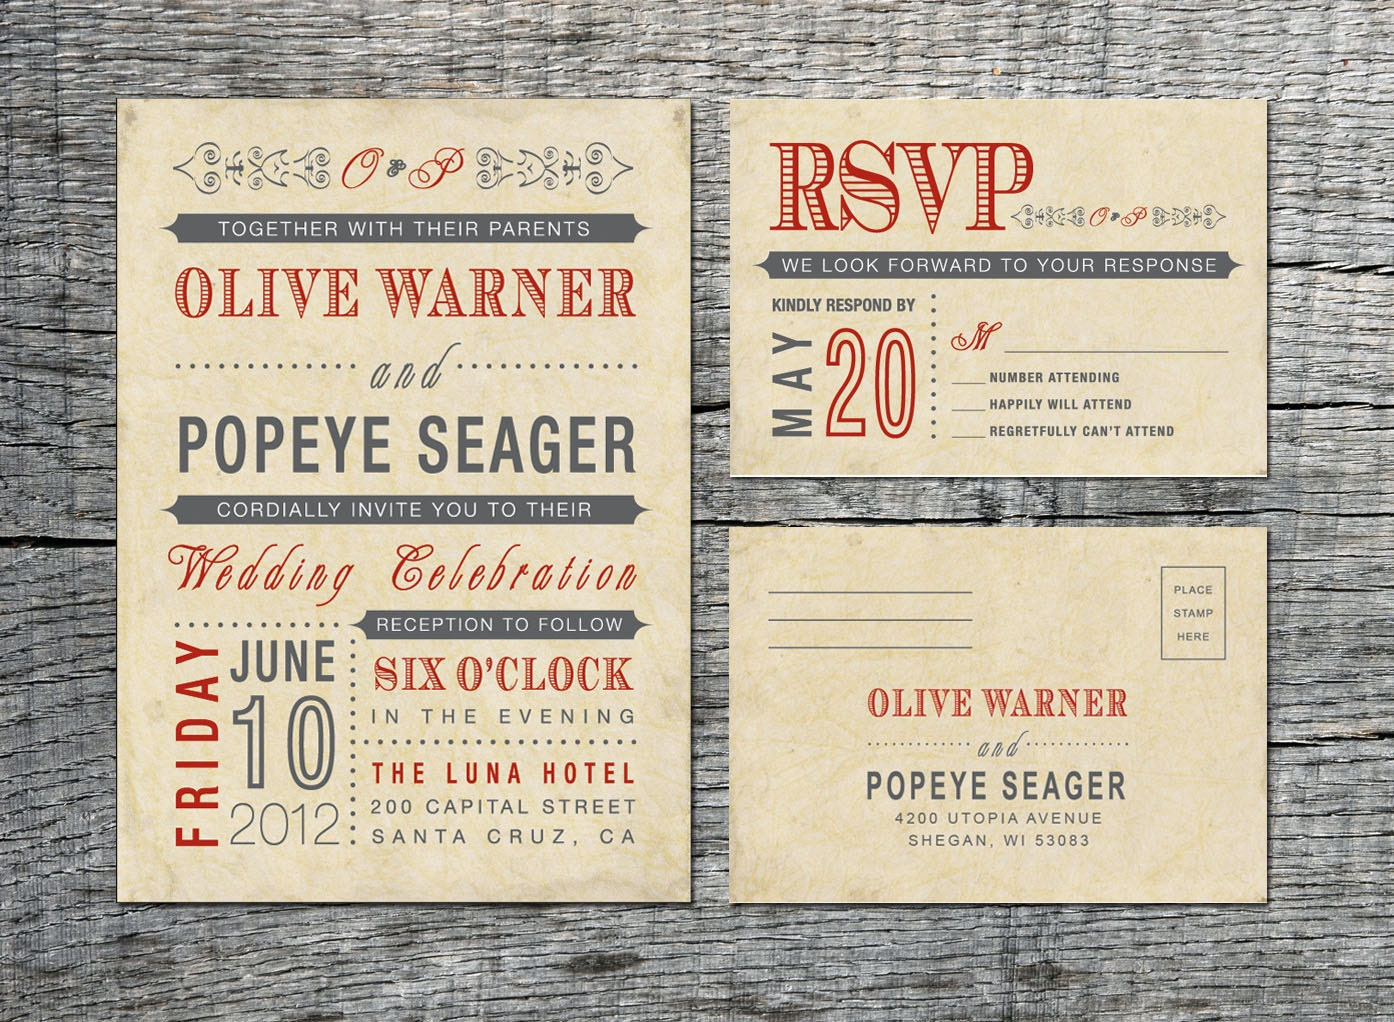 Free Samples Wedding Invitations: Vintage Wedding Invitation & RSVP Card Old Fashioned Style